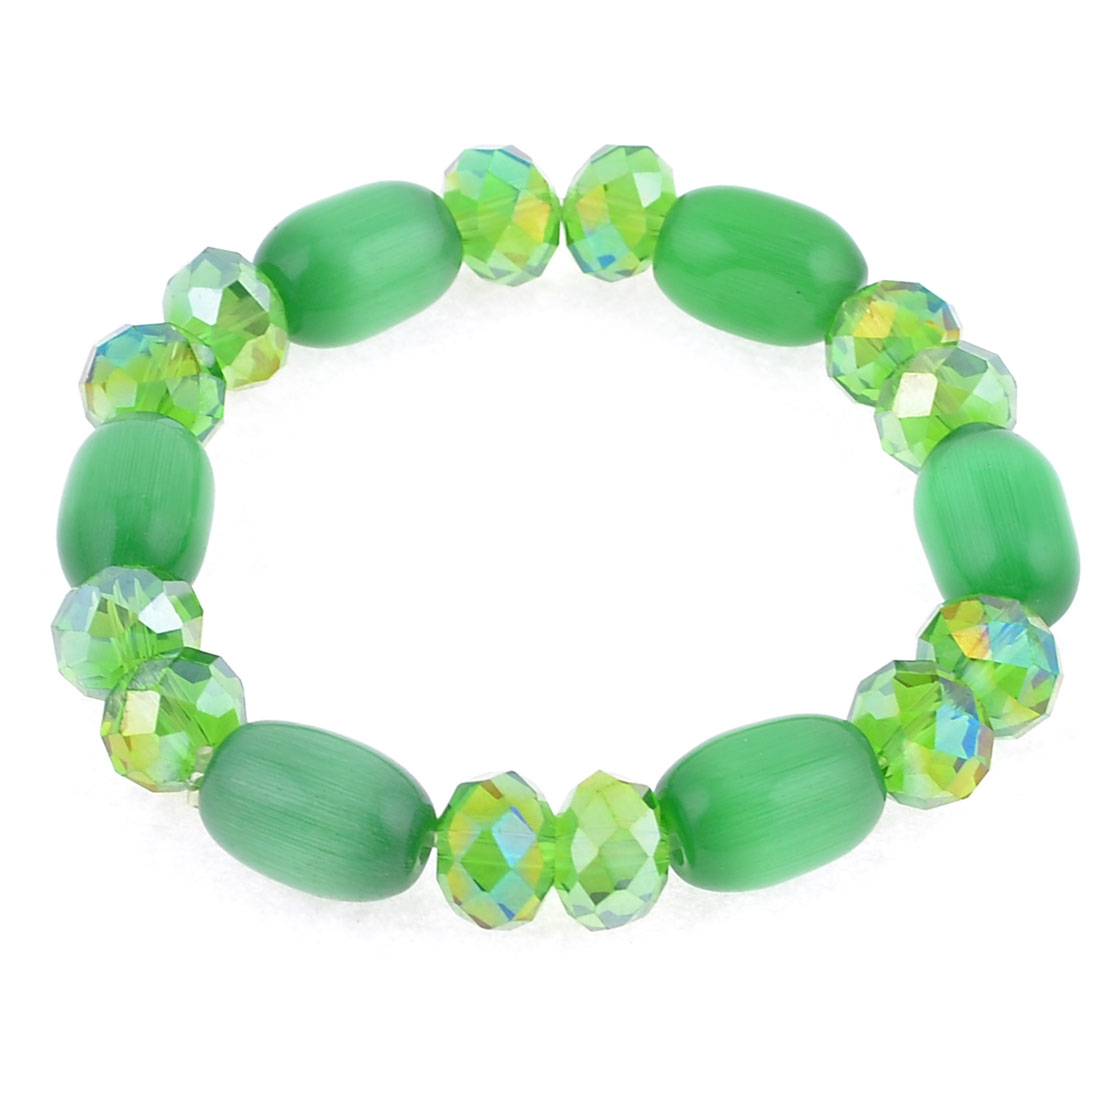 Party Green Faux Beaded Stretching Wrist Oranment Bracelet Jewelry for Women